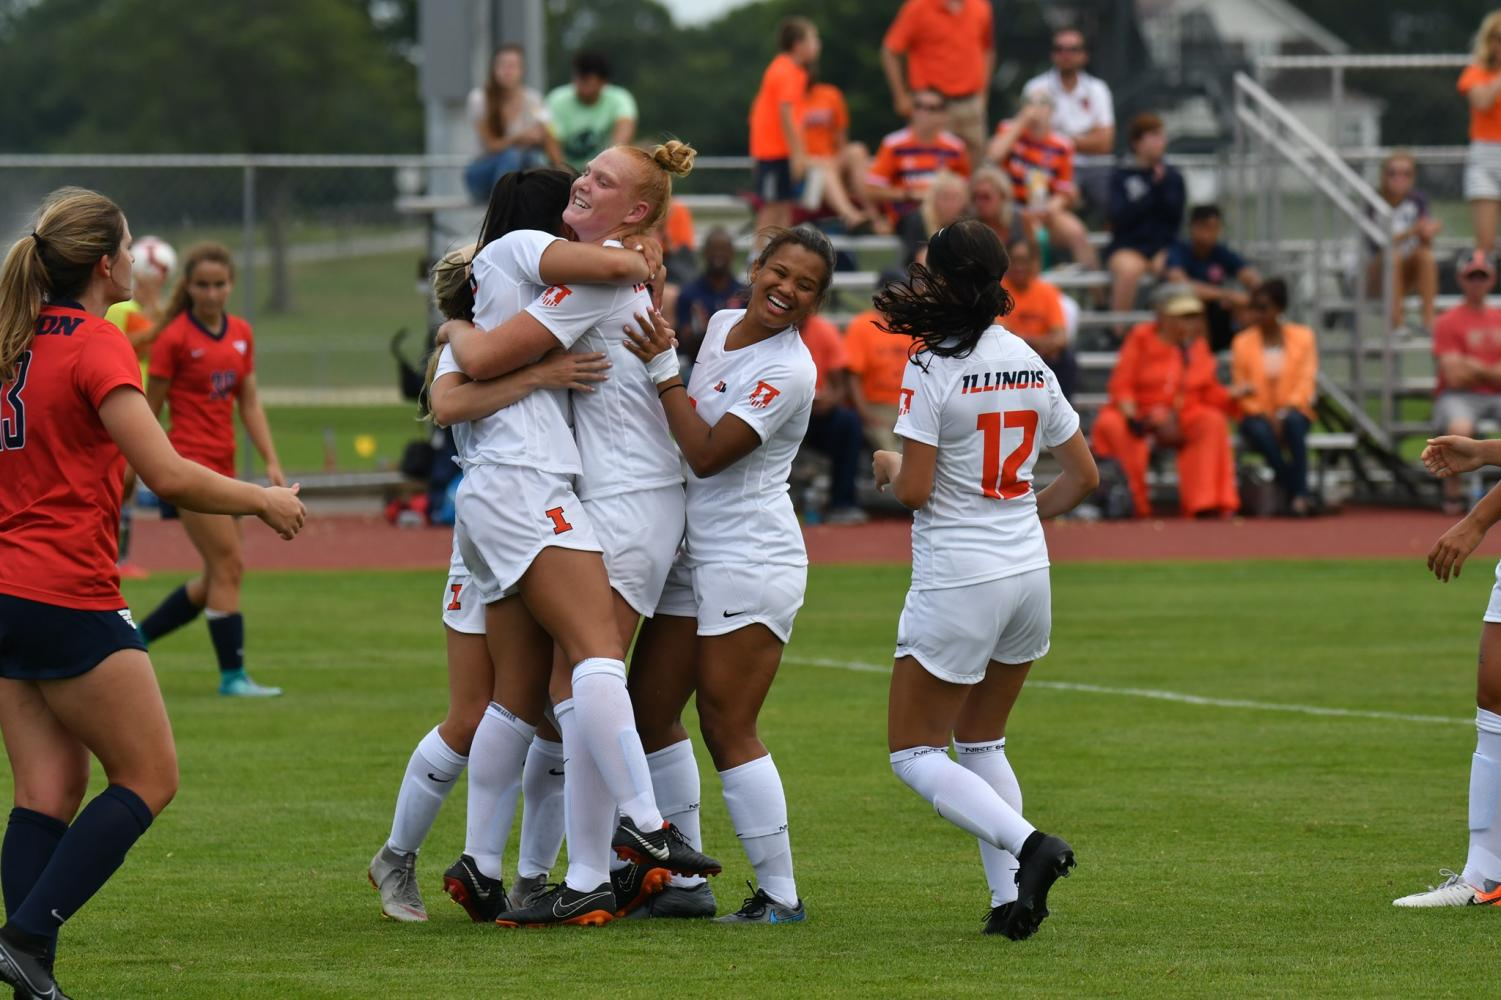 The Illinois soccer team celebrating their win against Dayton over the weekend. The Illini won 3-2.